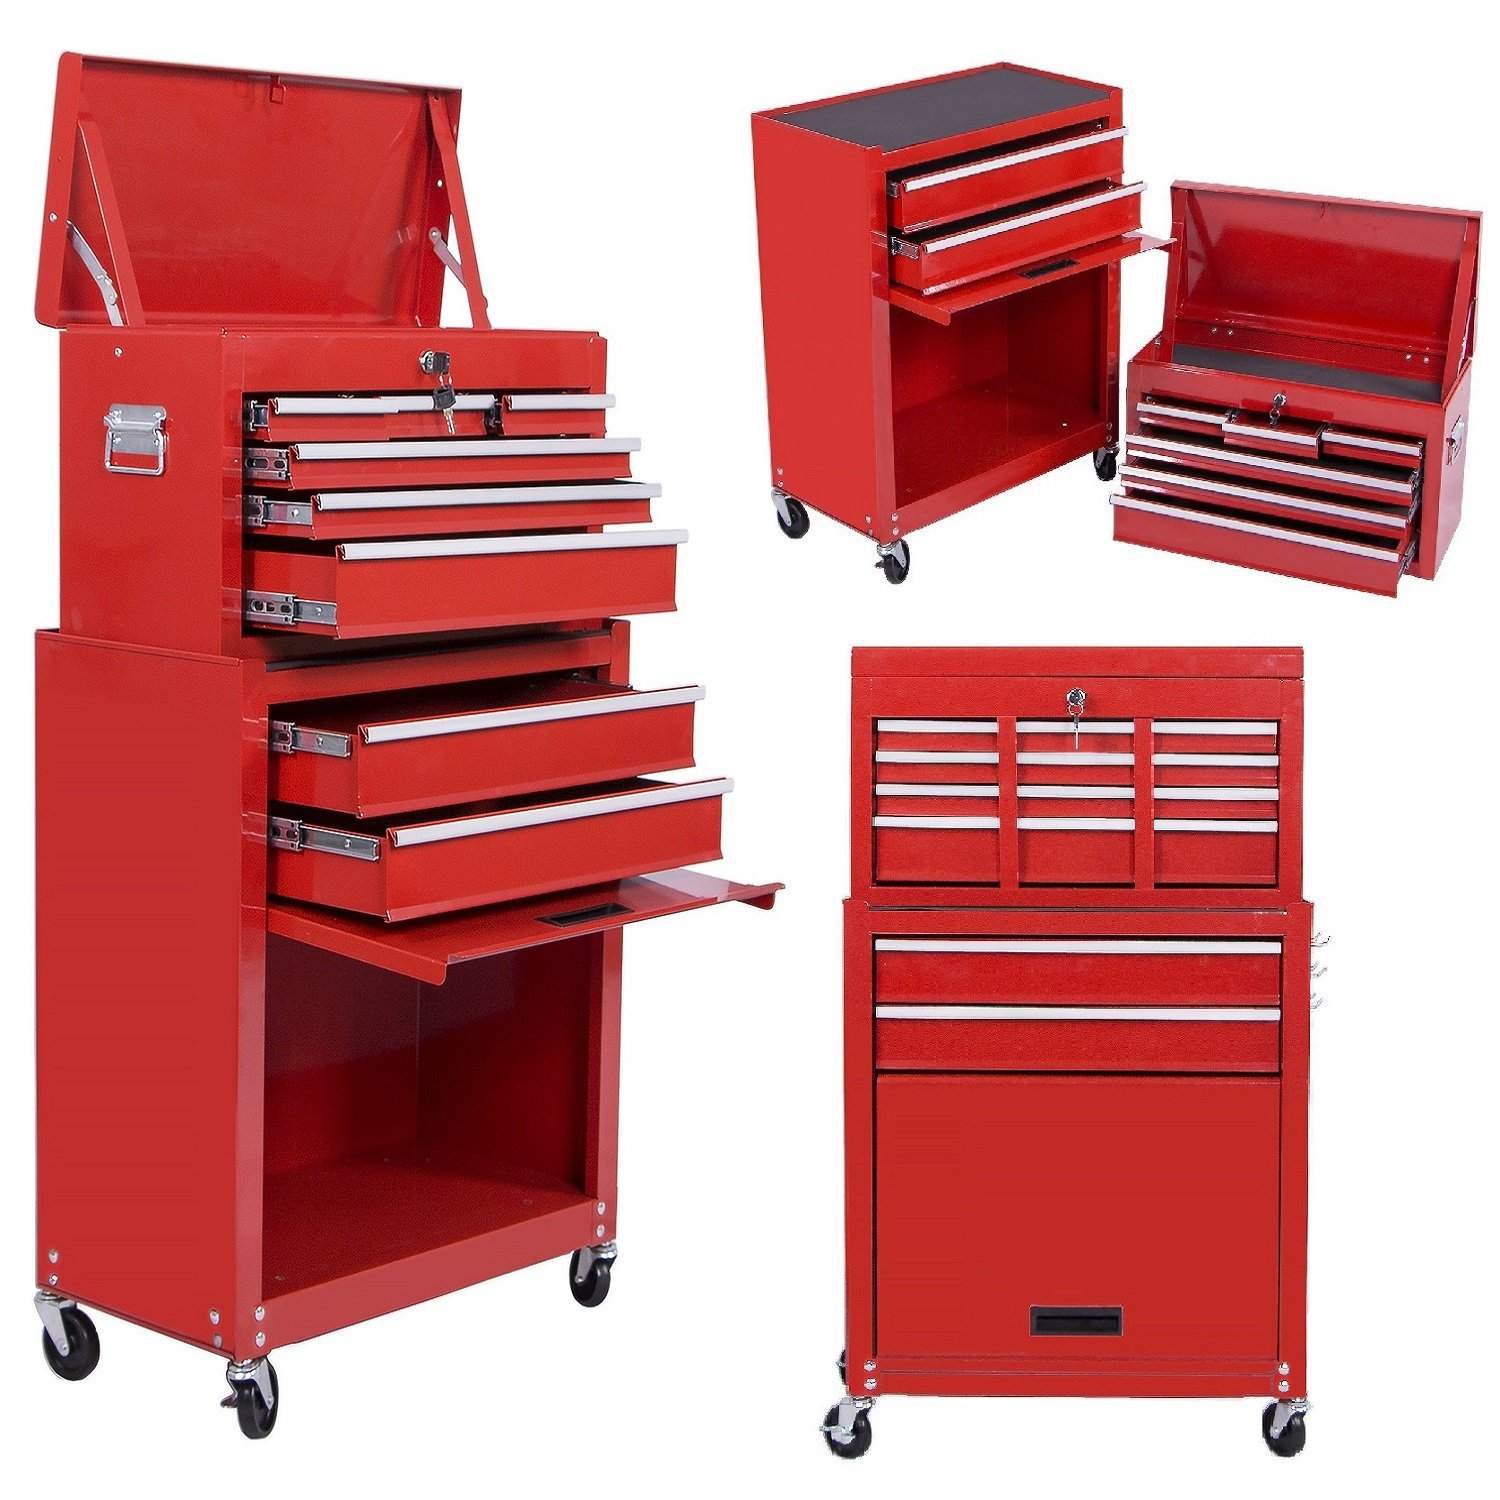 working industries images elegant for beautiful of tools interior hard storage waterloo home tool box modern cabinet end